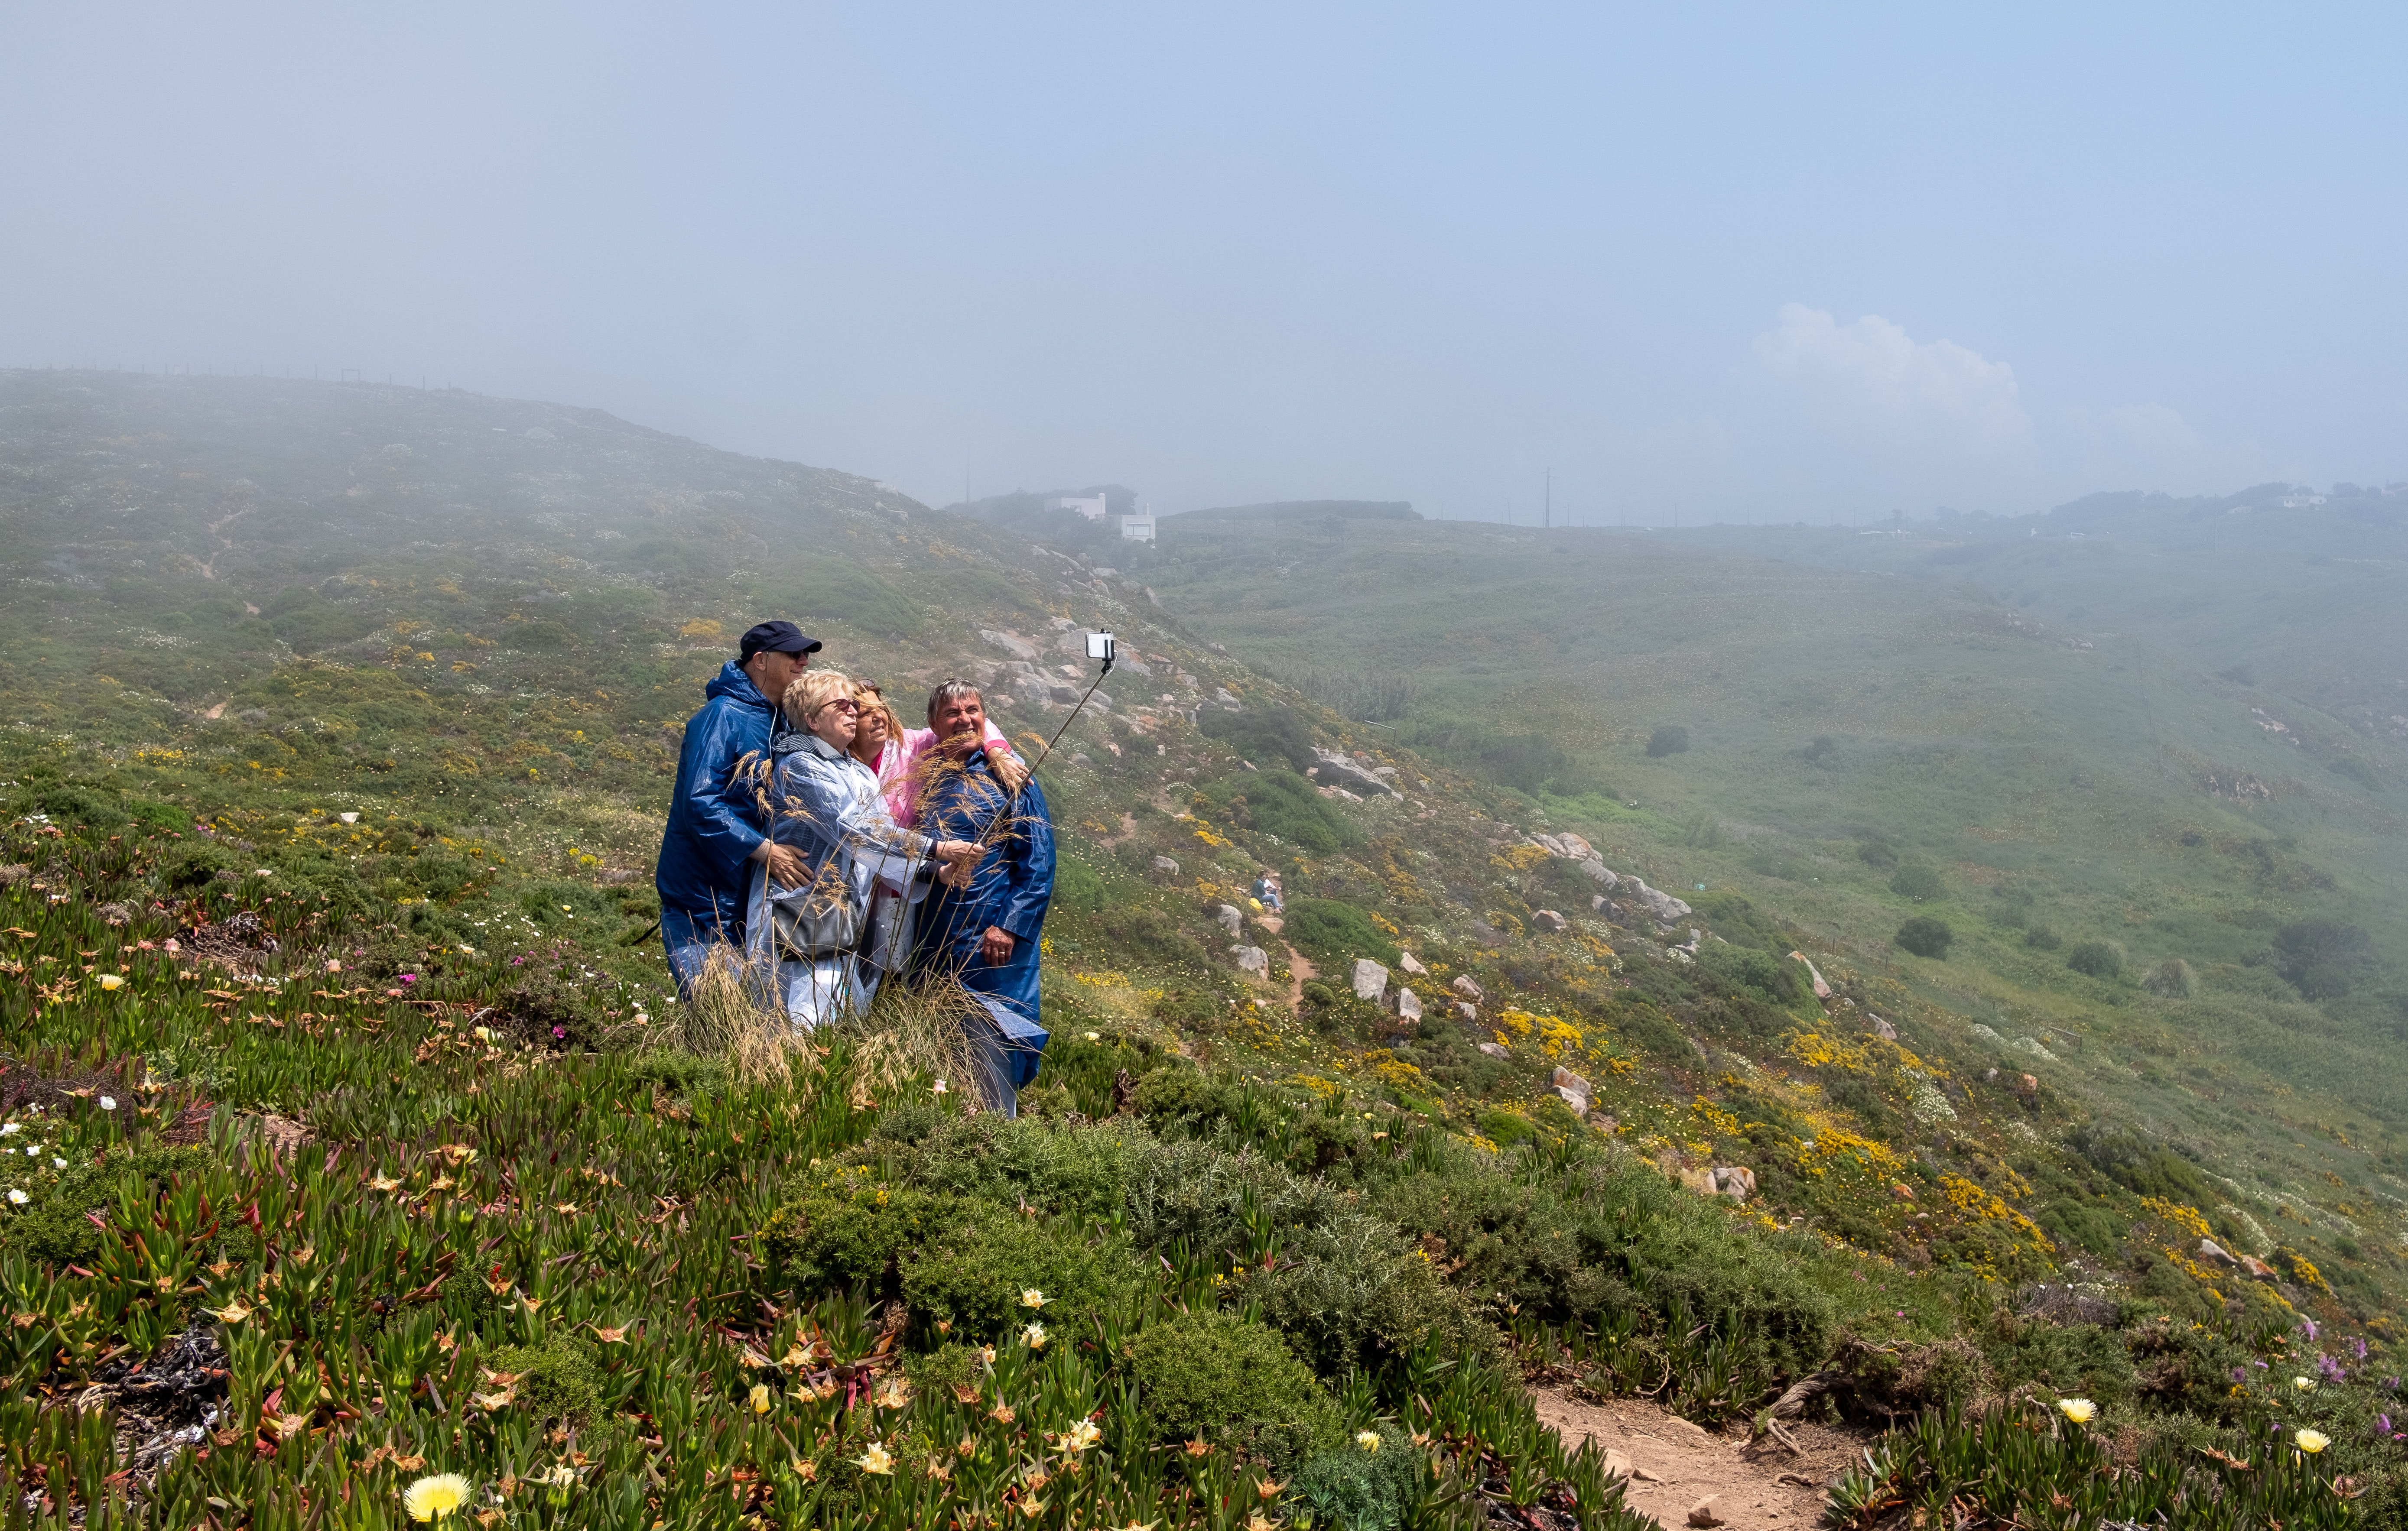 group of people standing on mountain